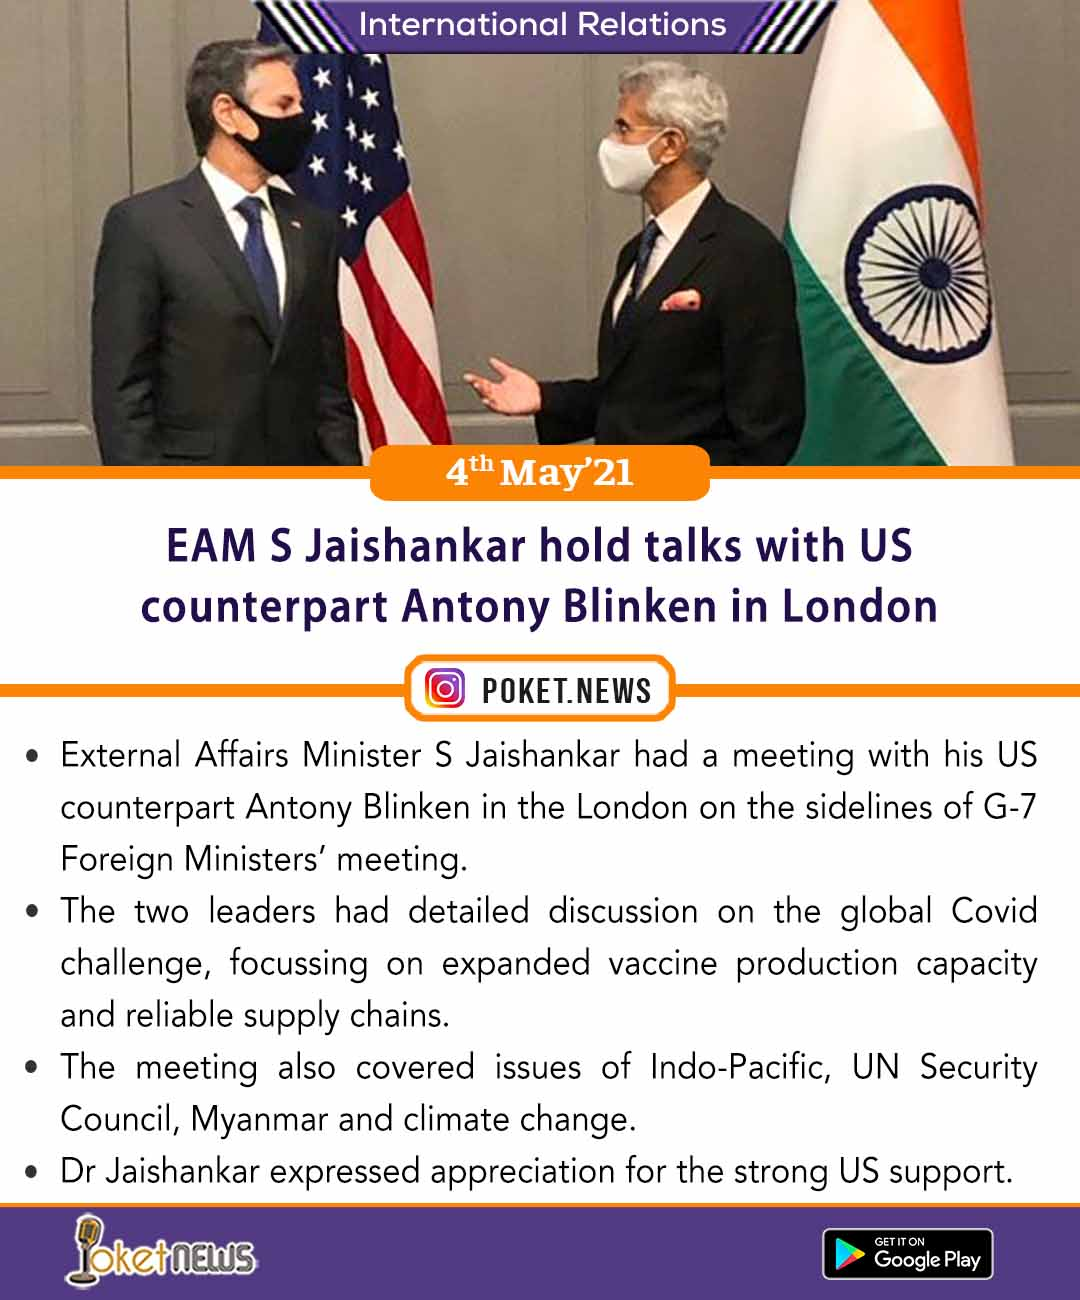 EAM S Jaishankar hold talks with US counterpart Antony Blinken in London